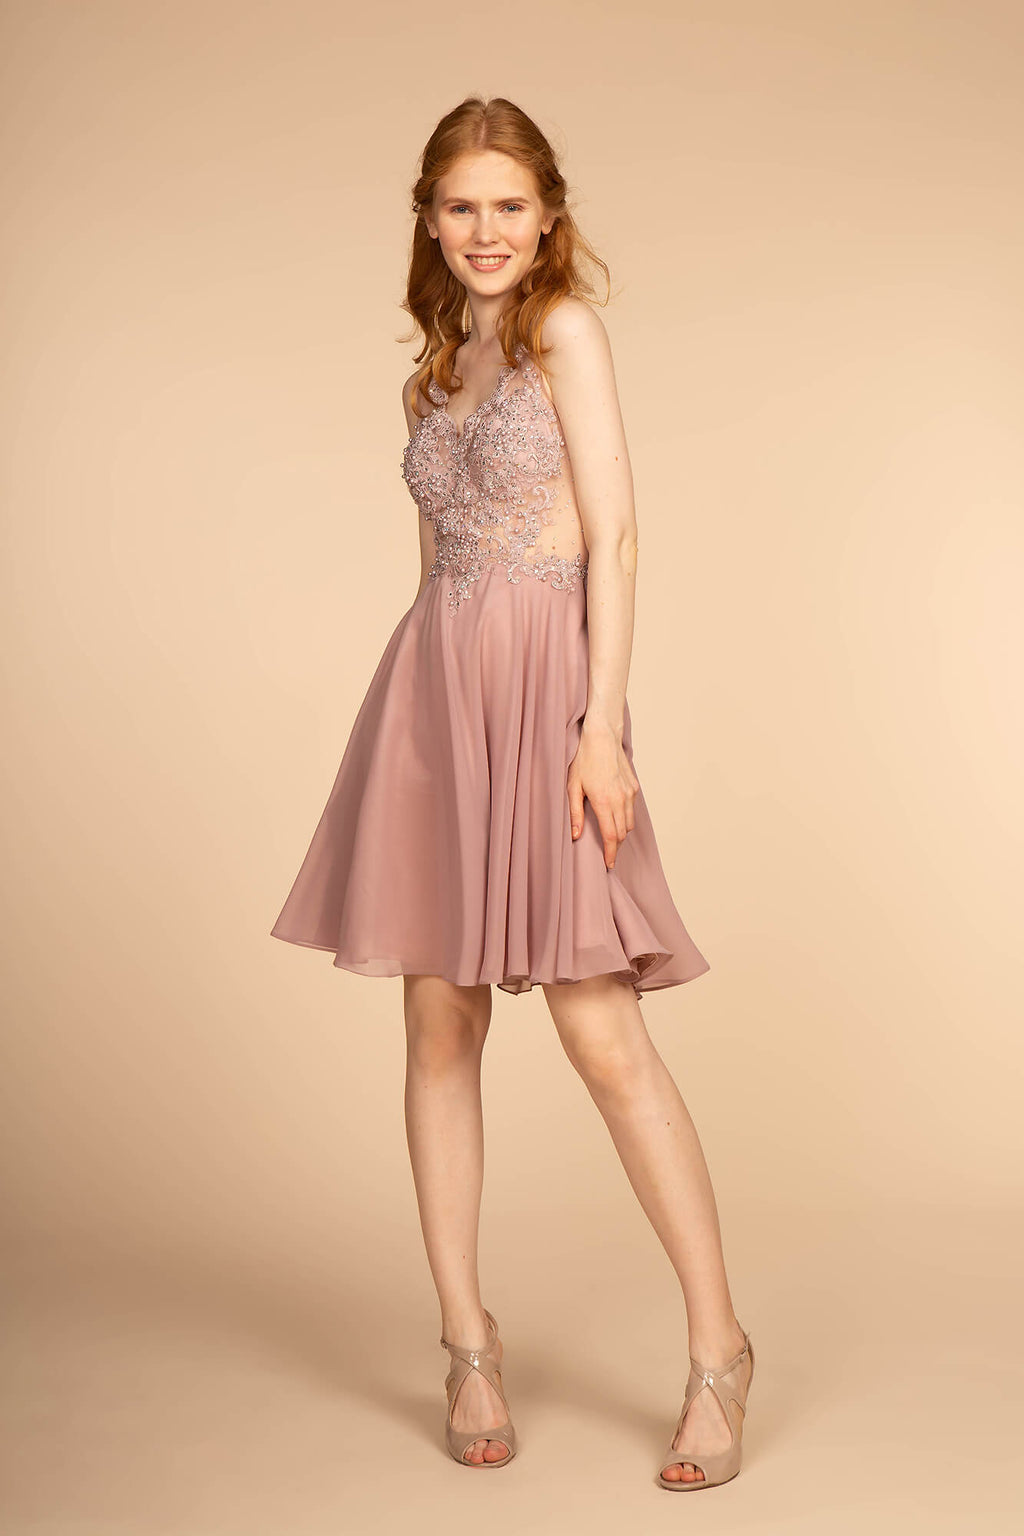 Short Prom Dress Homecoming - The Dress Outlet Mauve Pink